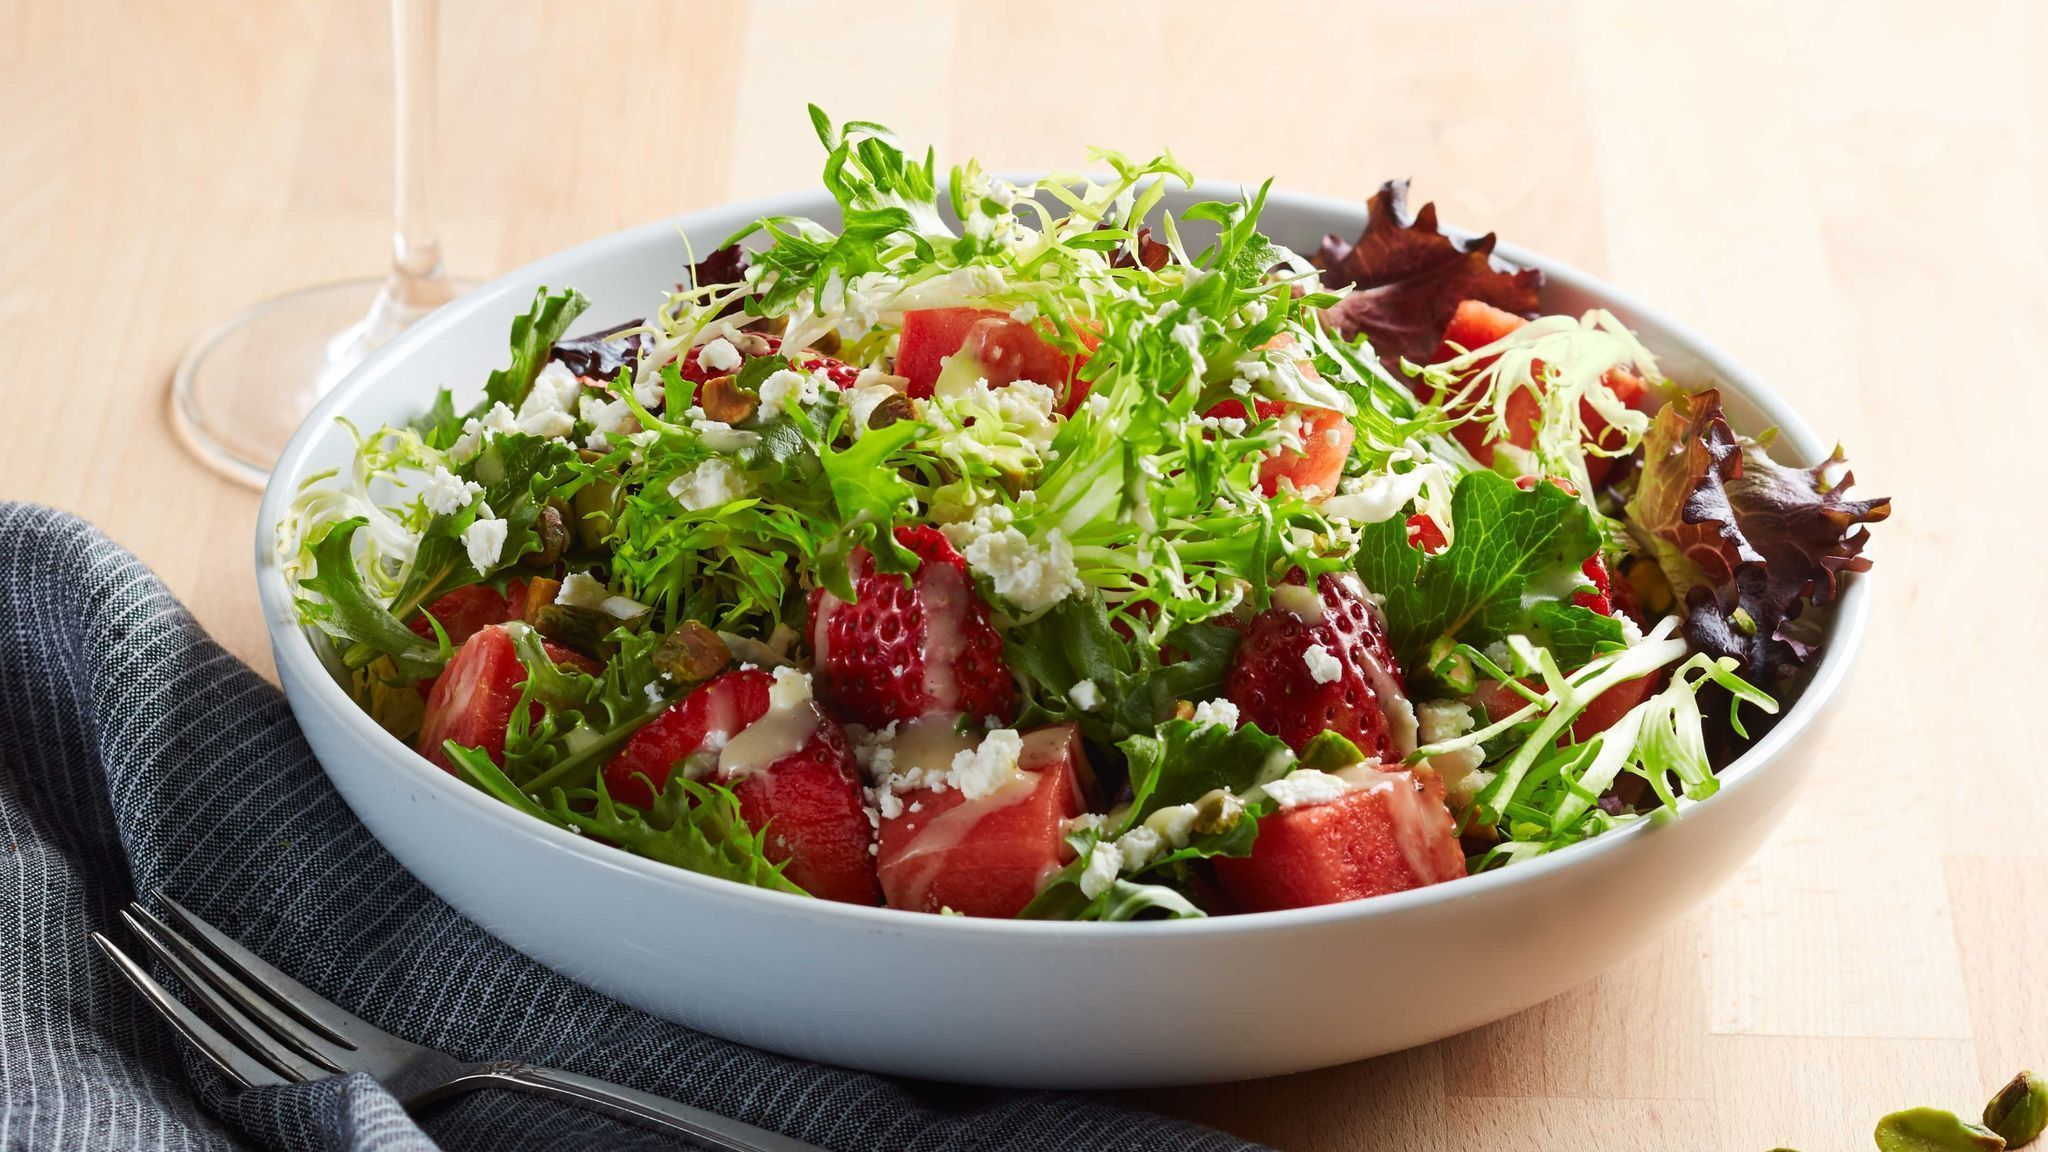 california pizza kitchen shares summer salad the san california pizza kitchen san diego fashion valley california pizza kitchen san diego la jolla